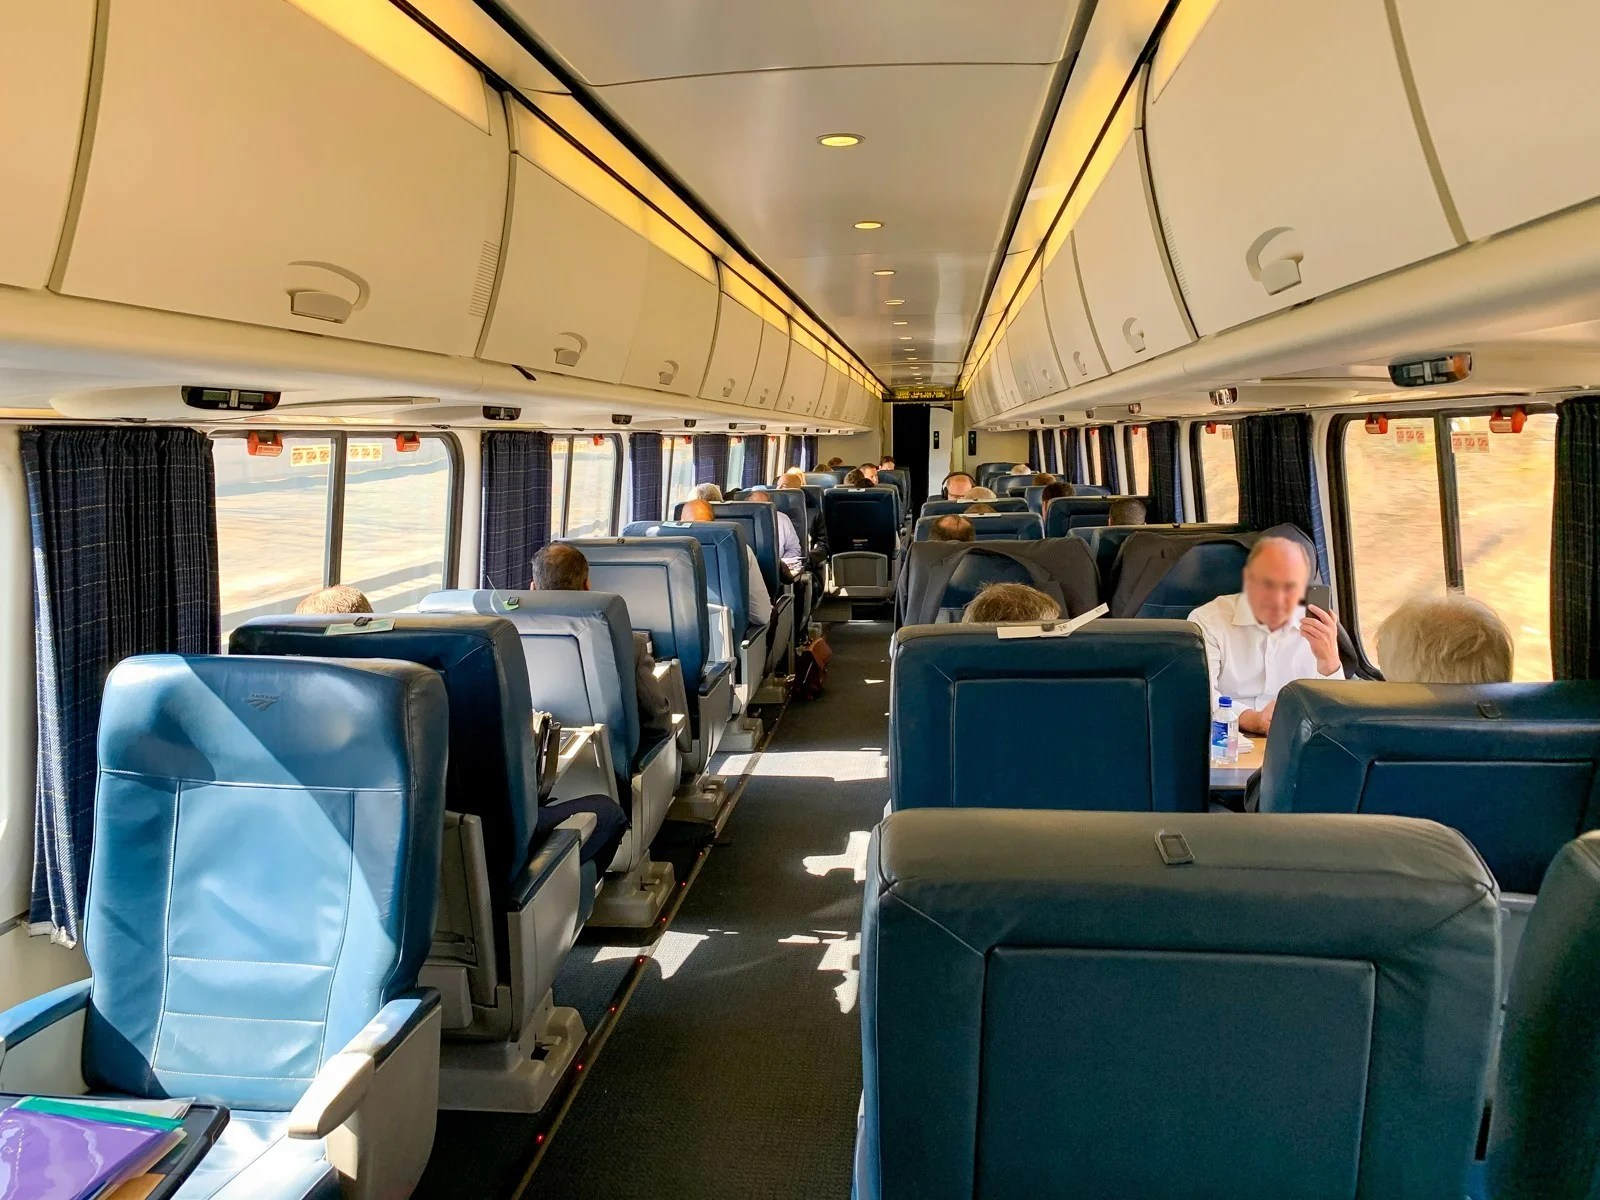 As Good as It Gets on the (American) Rails: A Review of Amtrak's Acela Express in First Class